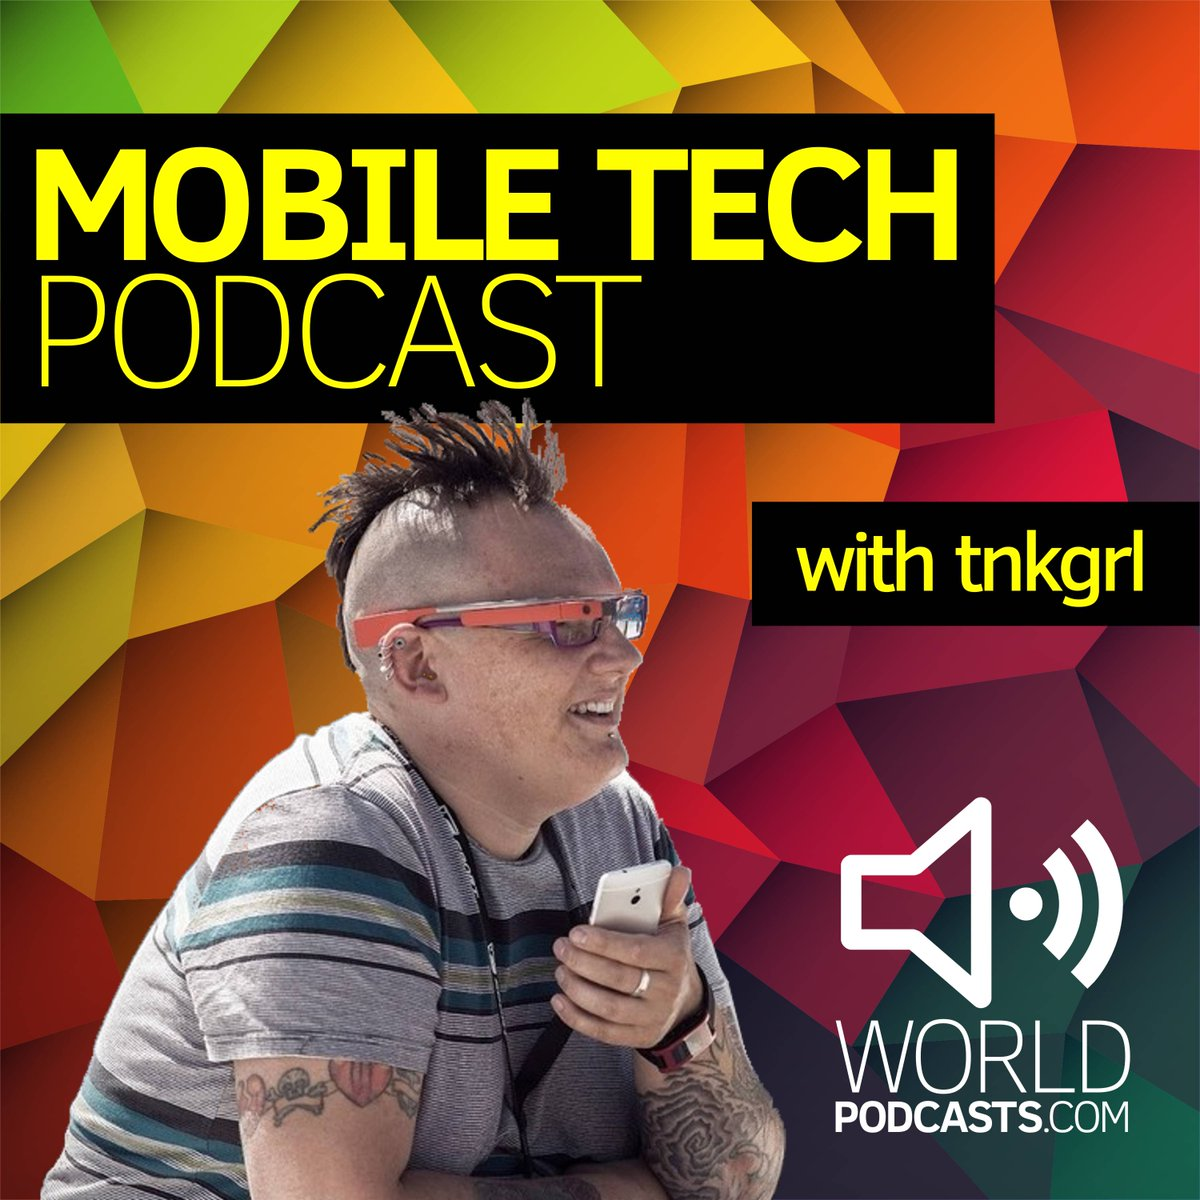 OMG, sooo much @SamsungMobileUS #GalaxyFold drama this week! @SoldierKnowBest and I dig into this and more -- including @oneplus and @oppo news -- on episode 107 of my #MobTechCast... Enjoy :) https://worldpodcasts.com/samsung-galaxy-fold-fiasco-oneplus-7-pro-rumors-and-oppo-reno-10x-with-youtube-creator-mark-watson-soldier-knows-best-mobile-tech-podcast-107/…